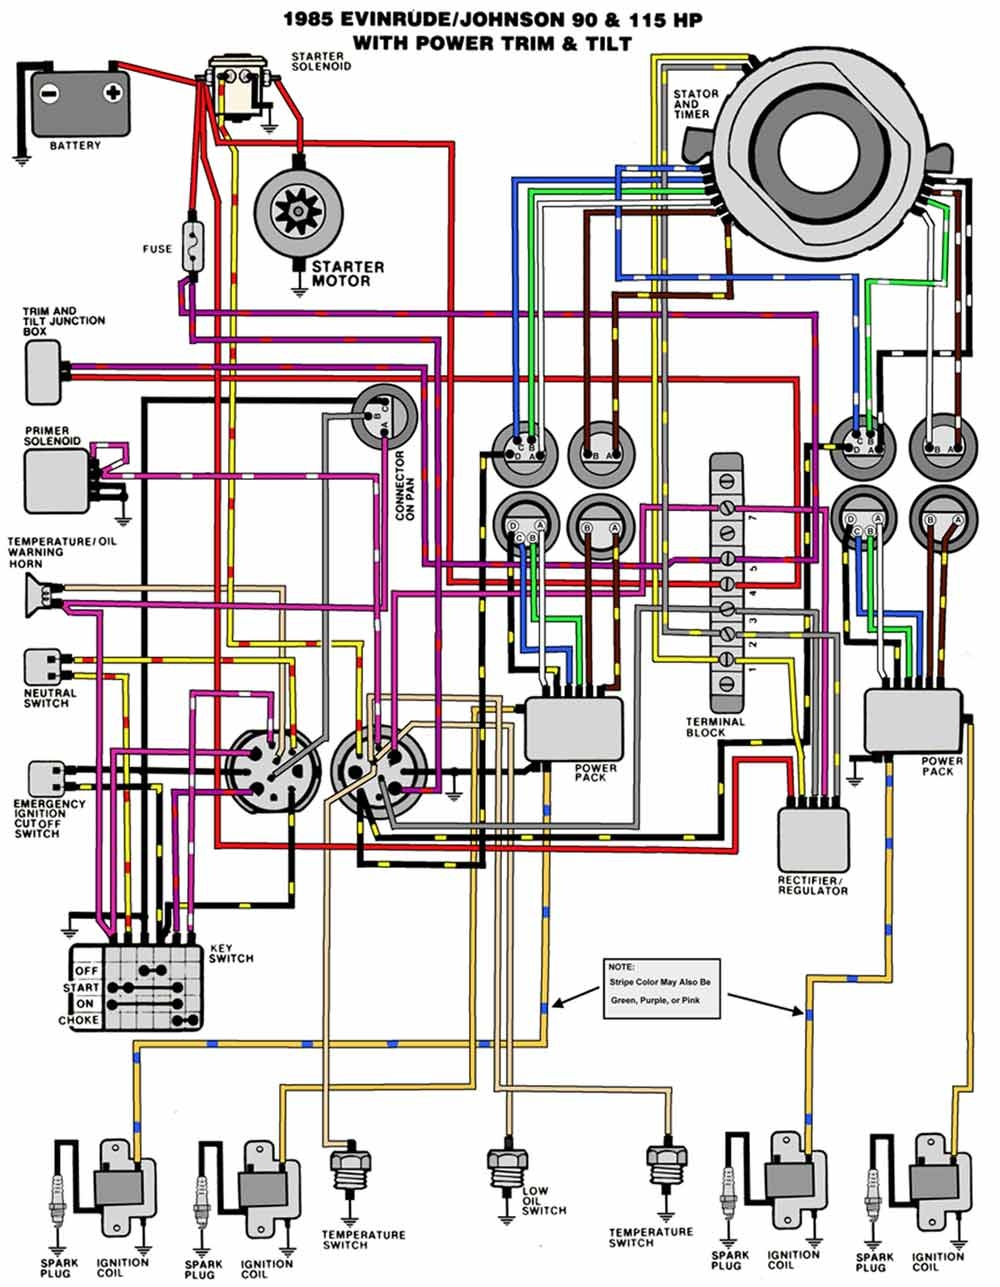 mercury outboard ignition switch wiring diagram chrysler outboard ignition switch wiring diagram mercury outboard ignition switch wiring diagram | free ...